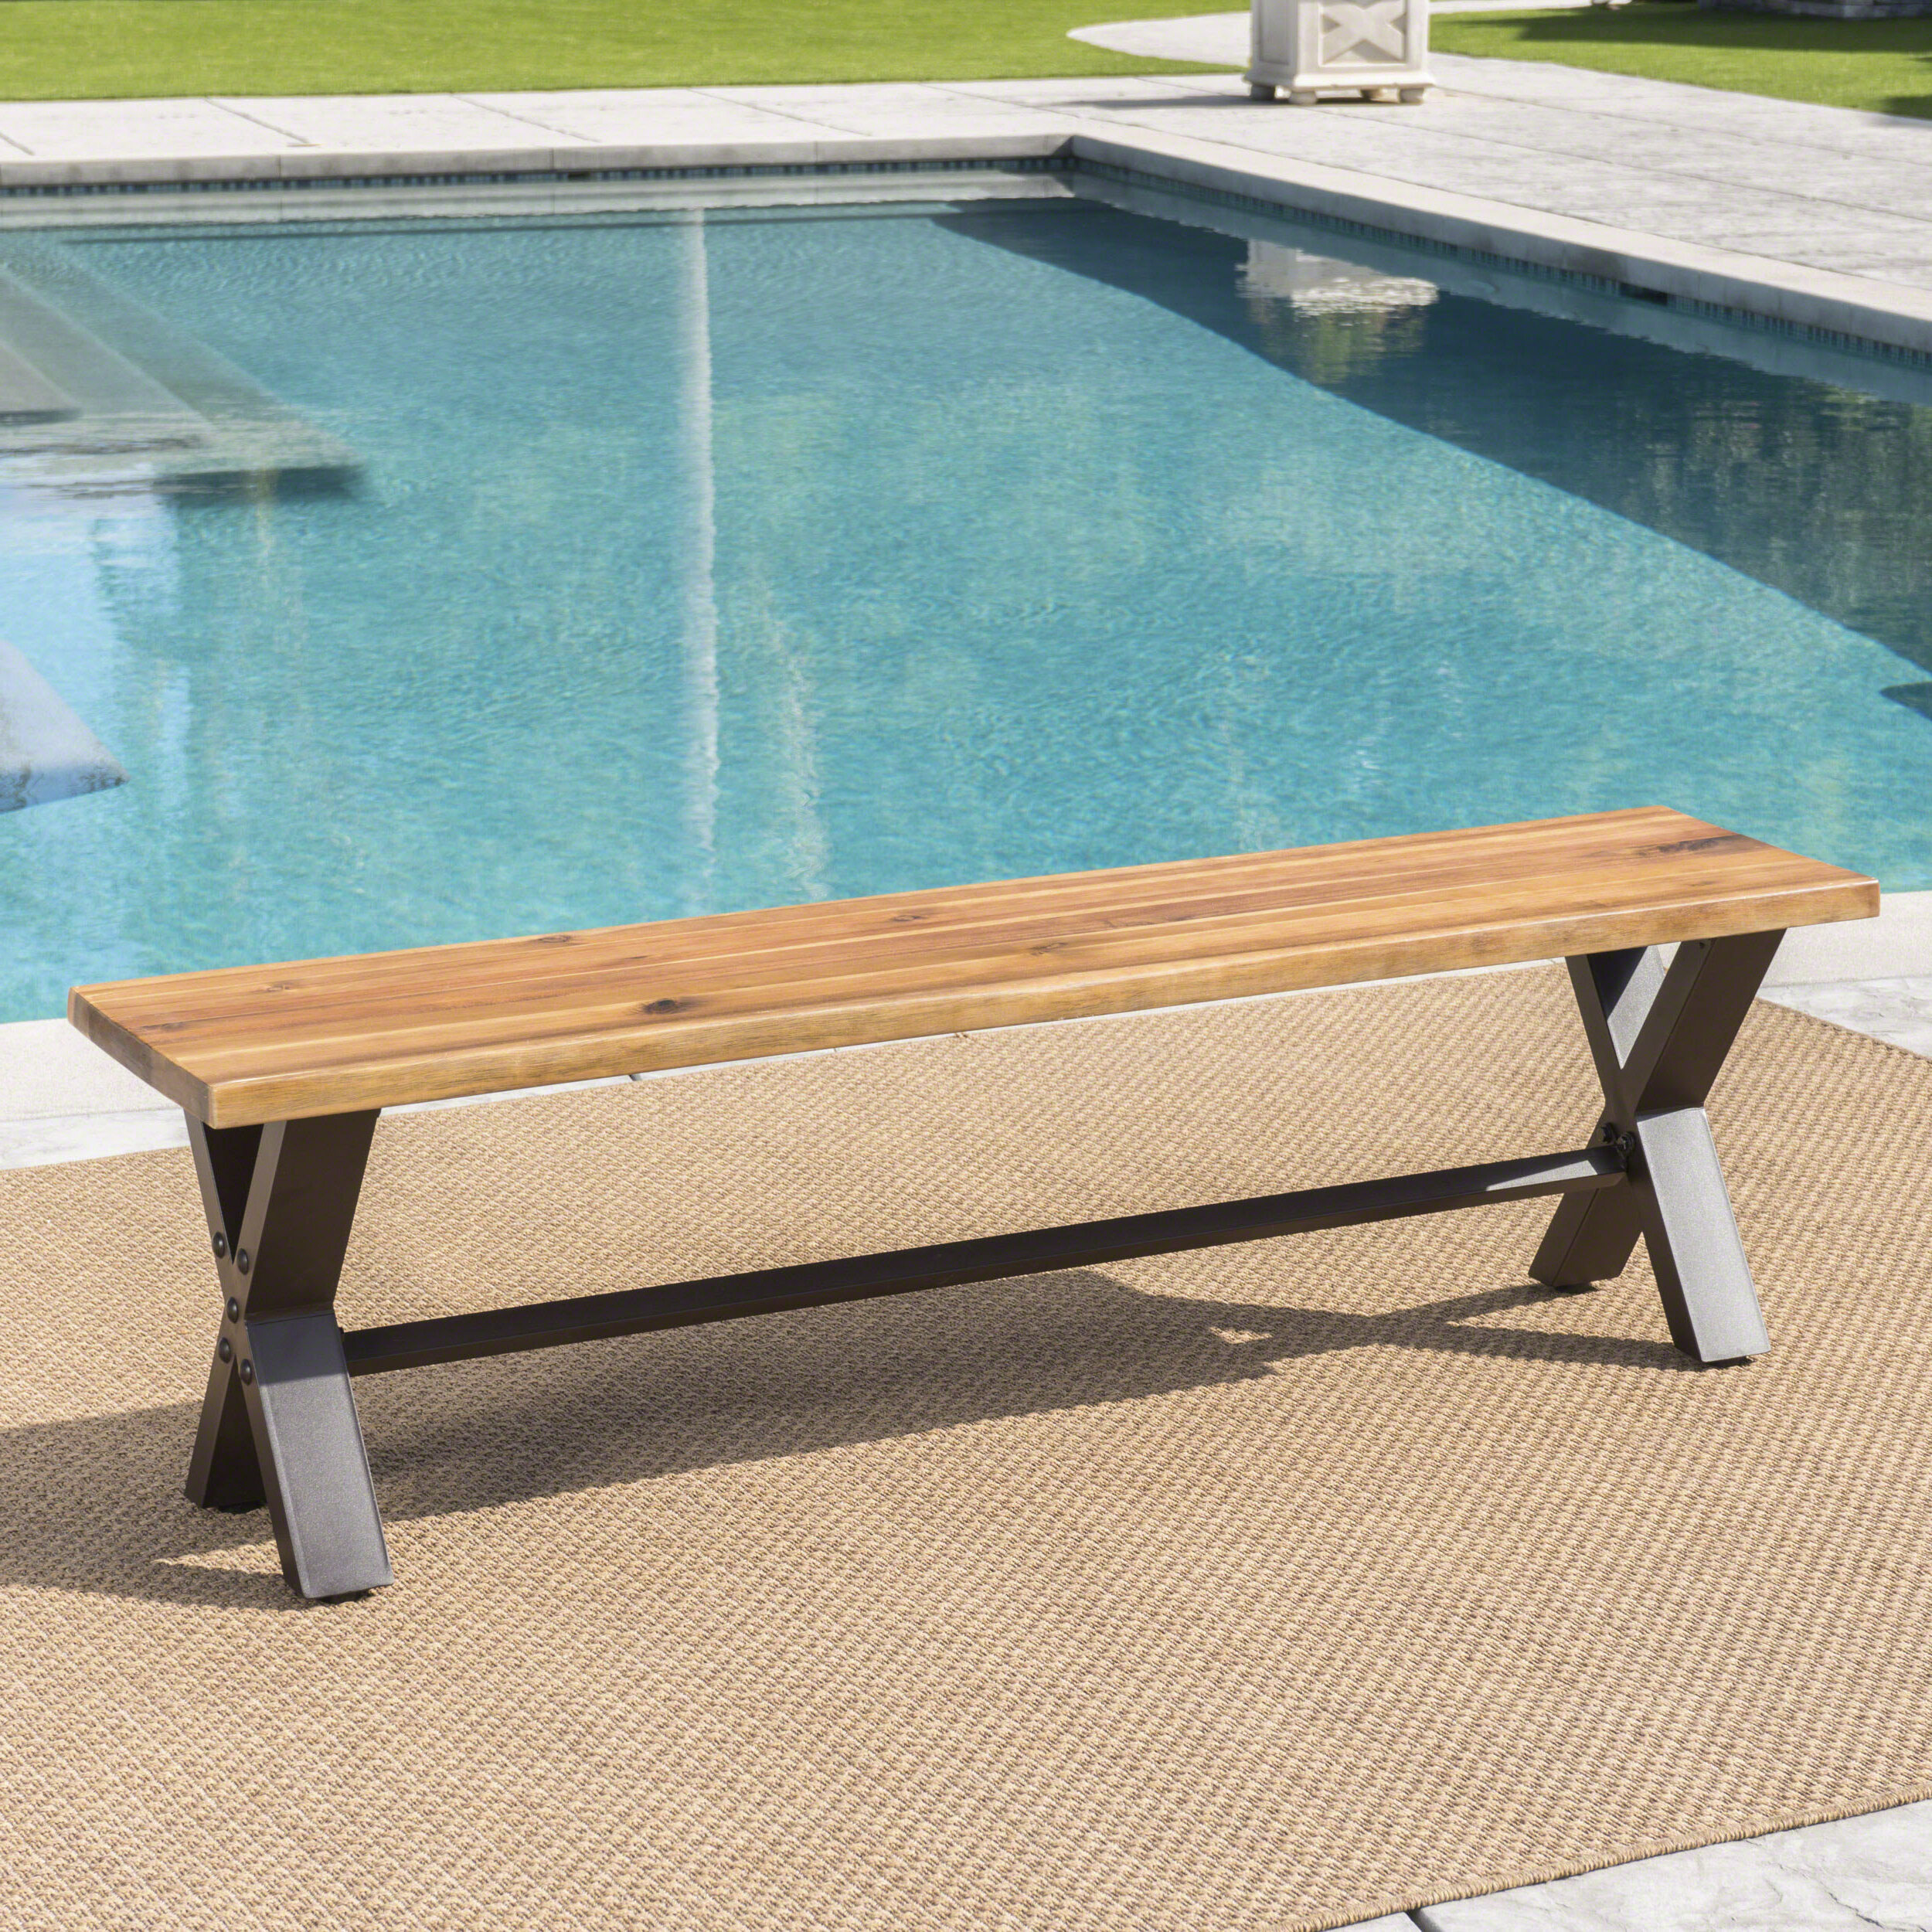 Gabbert Wooden Garden Benches For Well Known 17 Stories Polito Outdoor Wooden Picnic Bench (View 10 of 30)